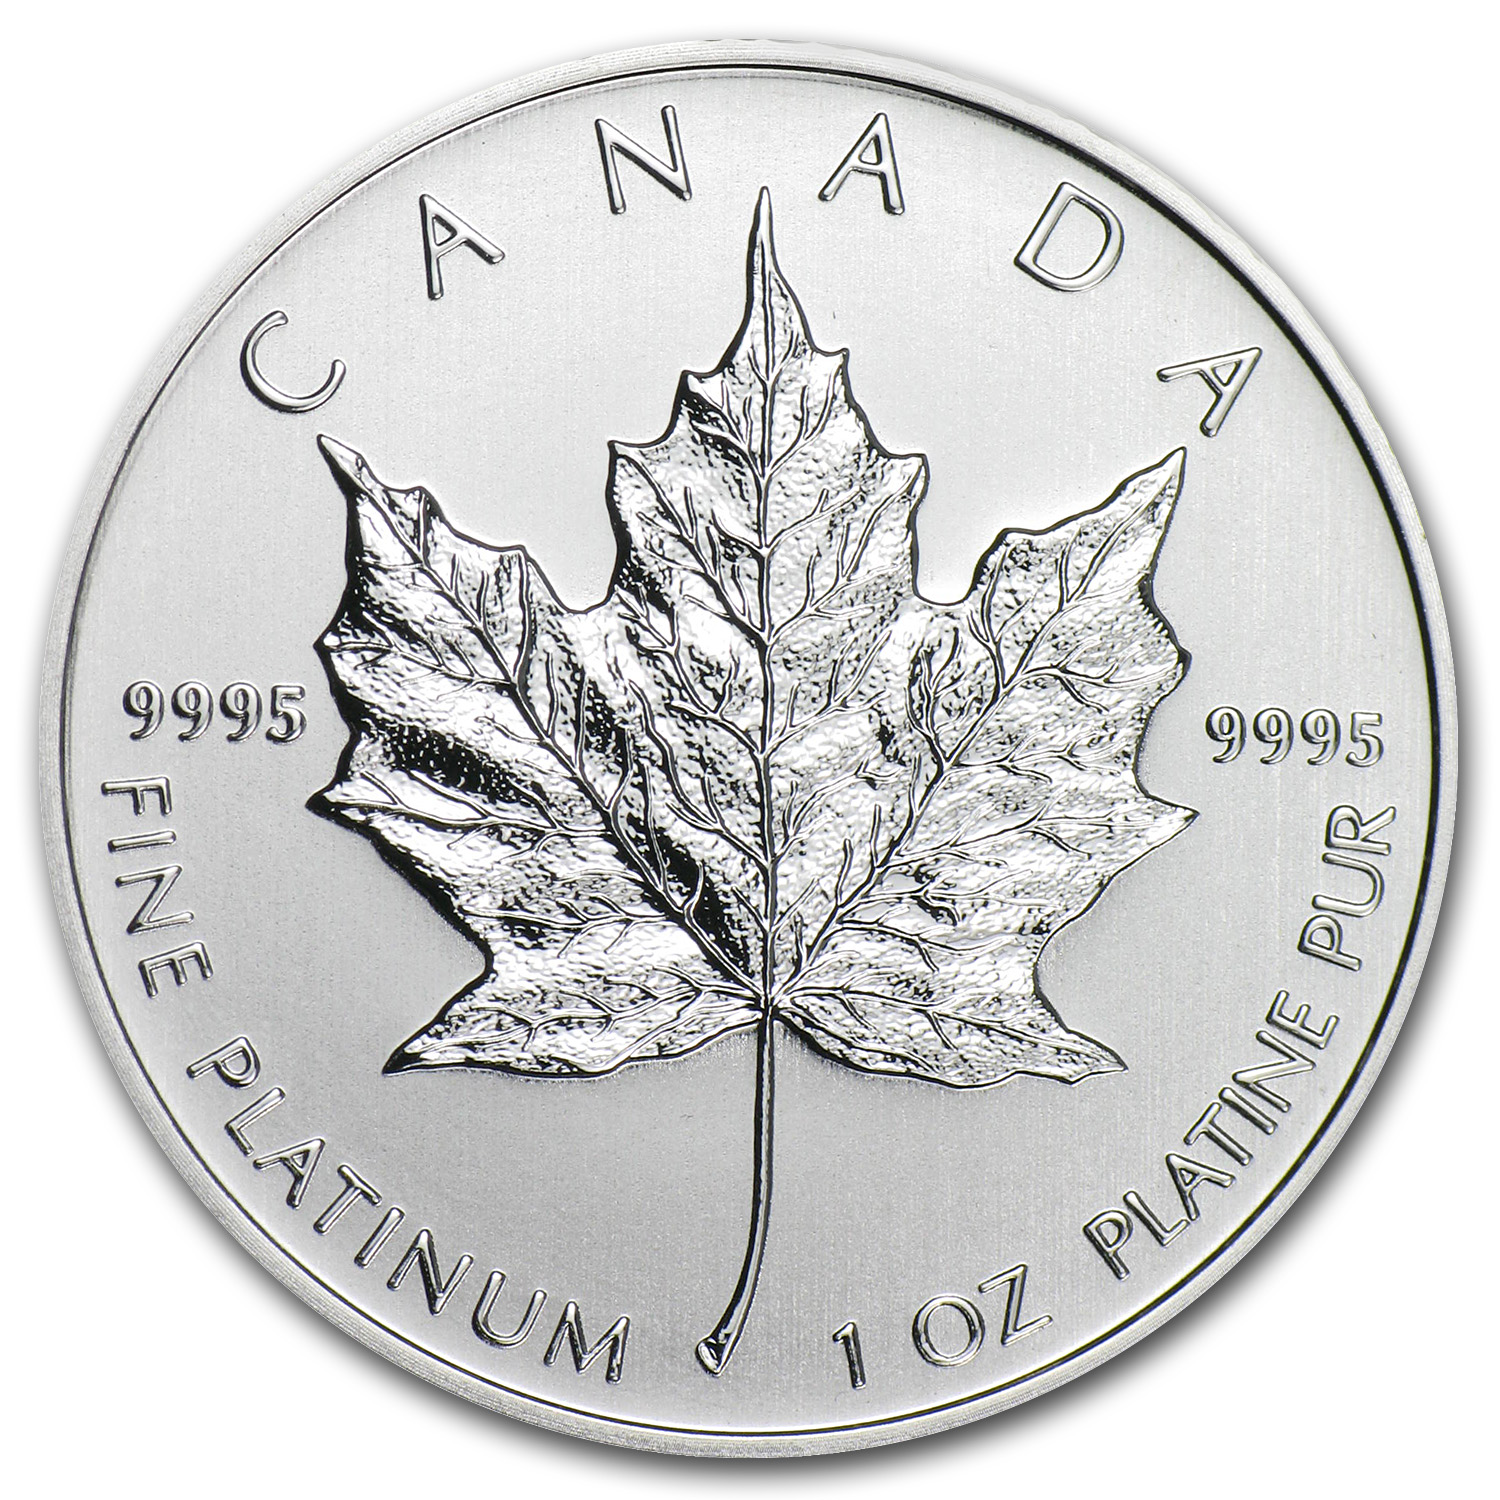 2013 1 oz Canadian Platinum Maple Leaf BU